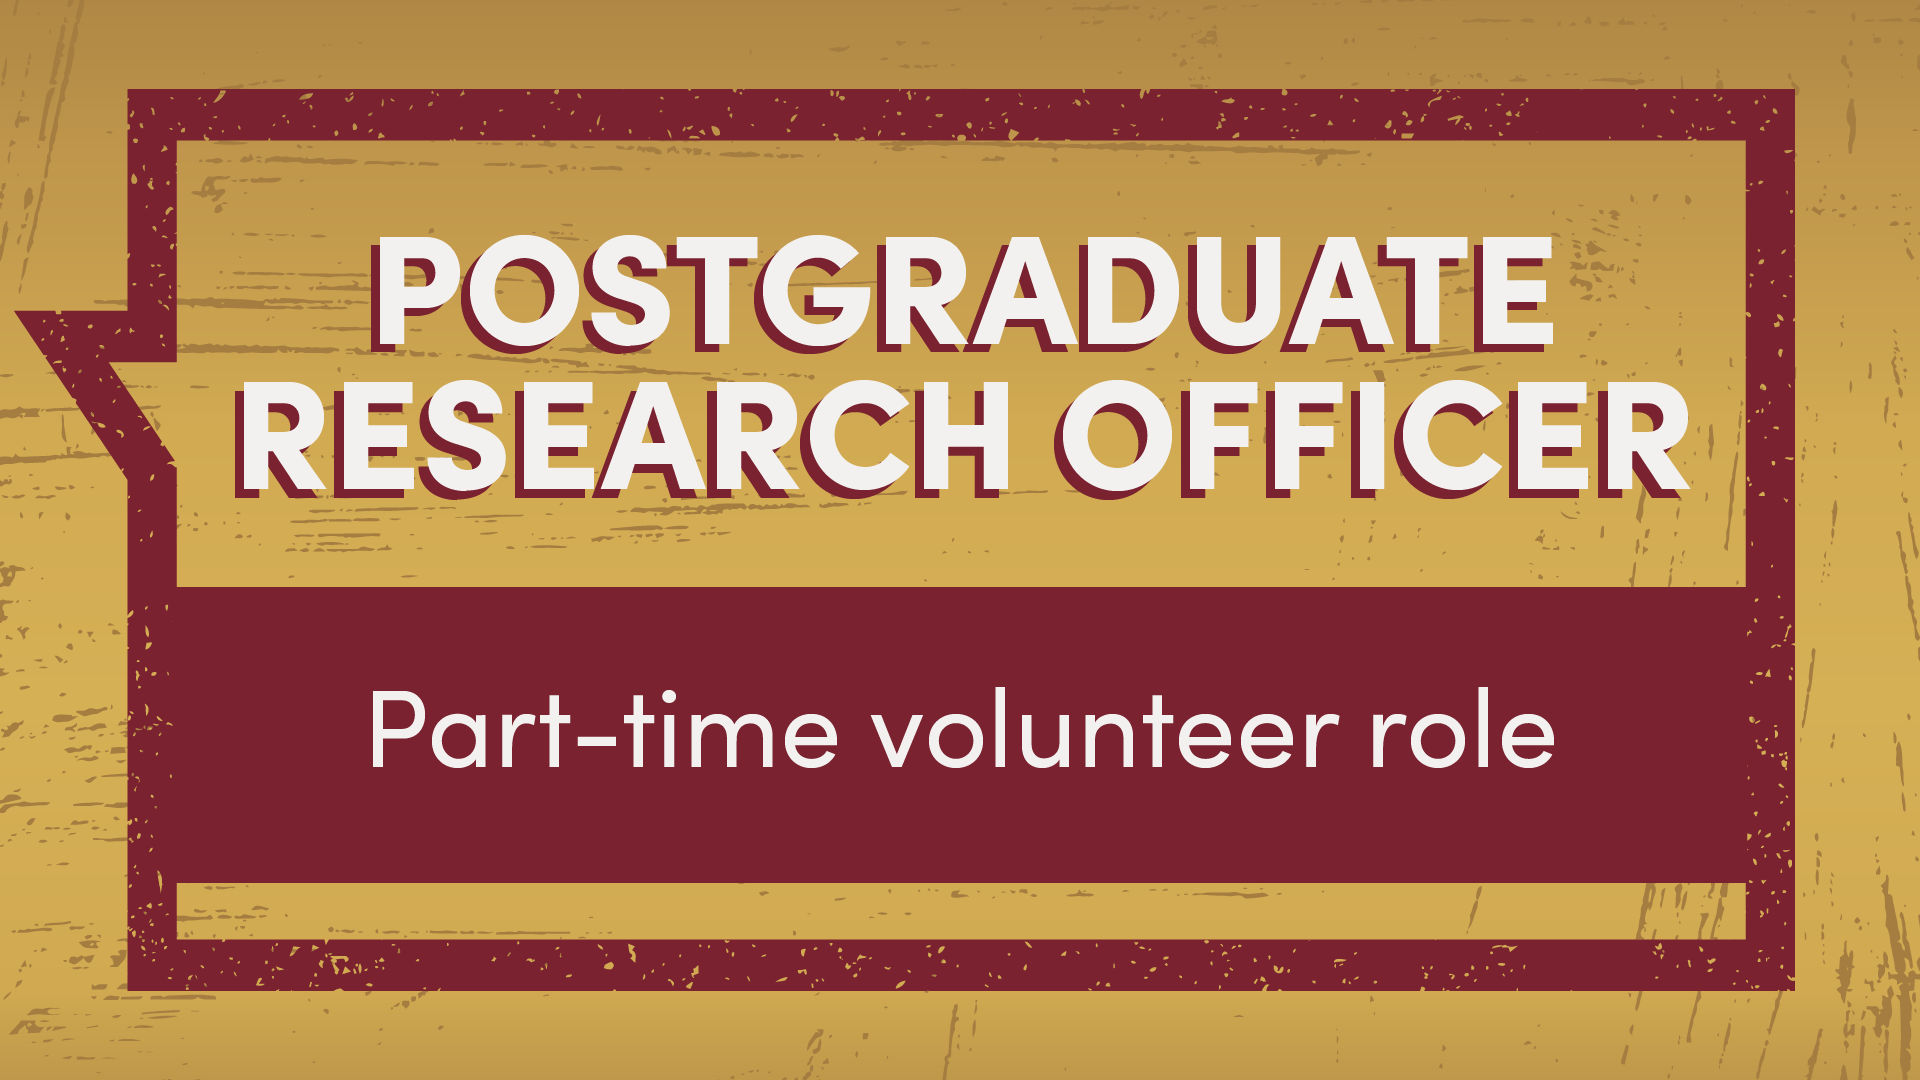 Postgraduate Research Officer part-time volunteer role